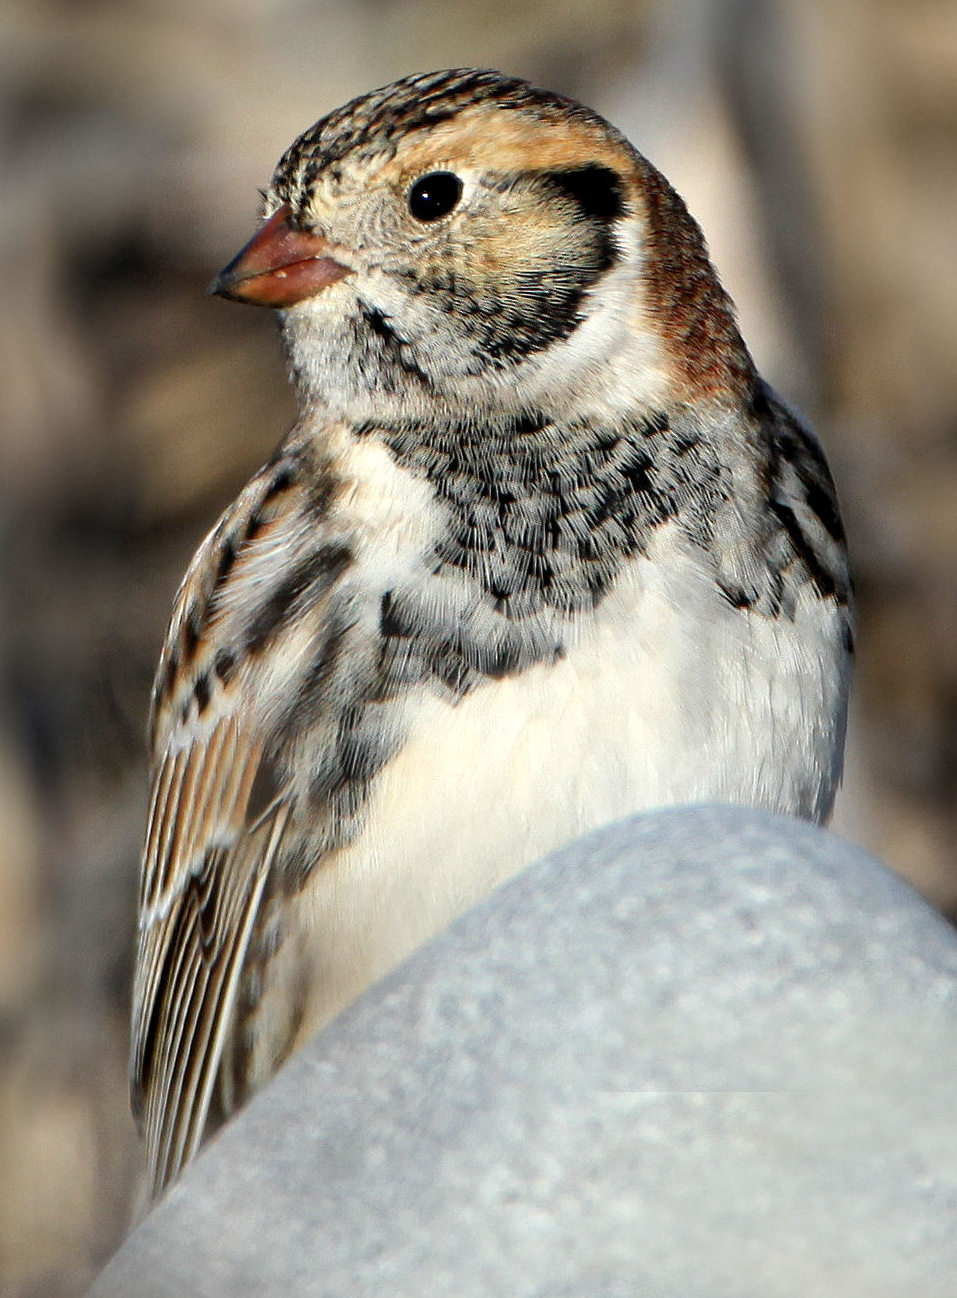 Lapland longspur photo by Nigel, FCC